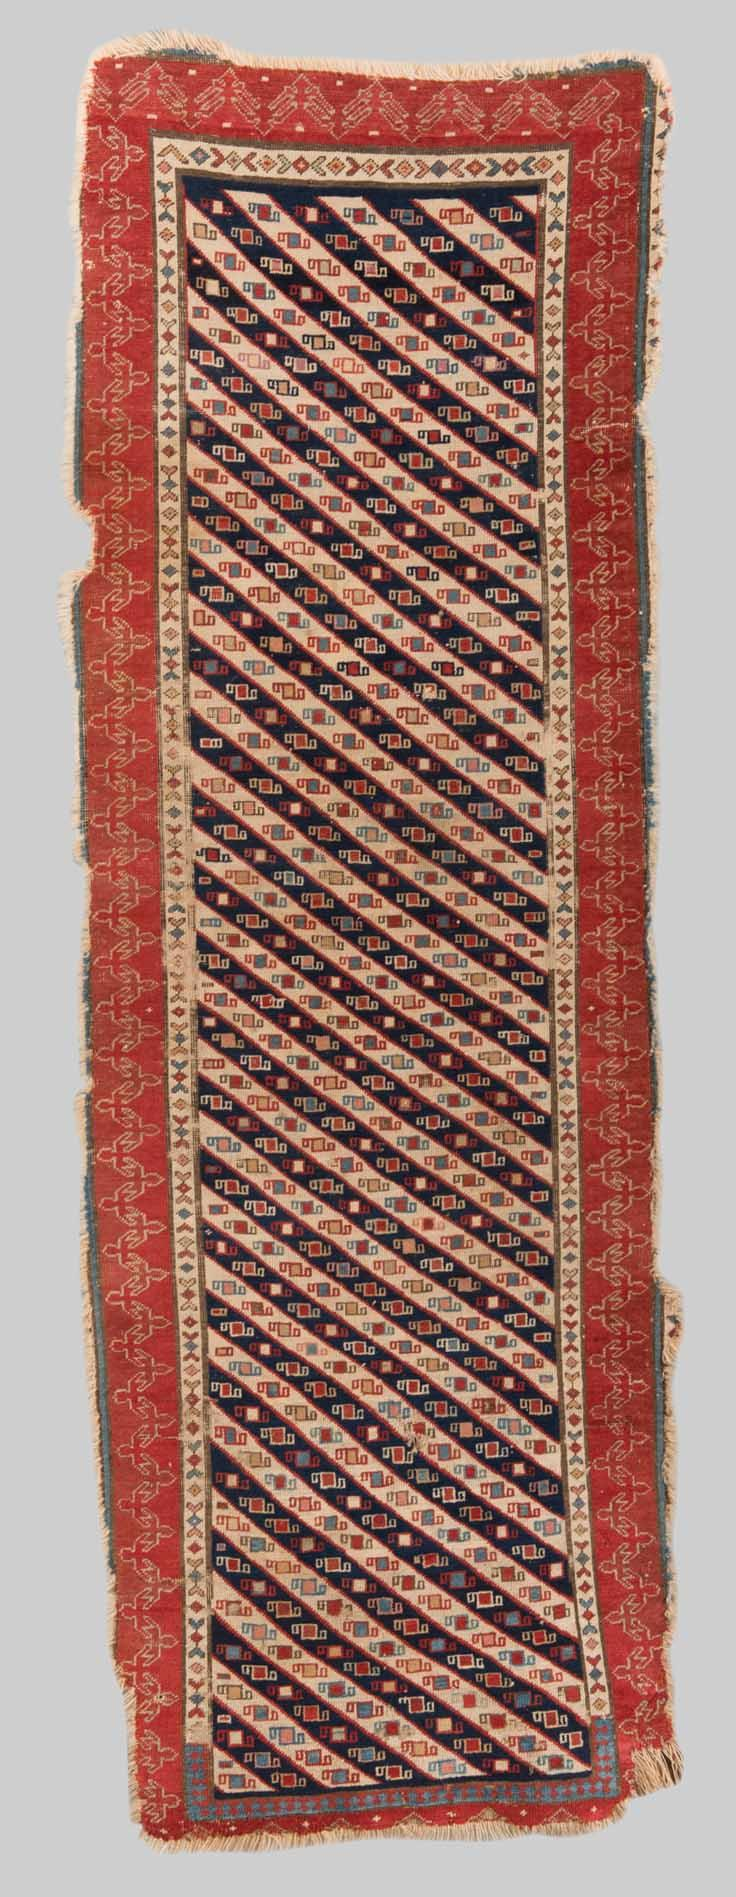 EAST CAUCASIAN RUG, Caucasus, mid 19th century; 7 ft. 9 in. x 2 ft. 7 in.